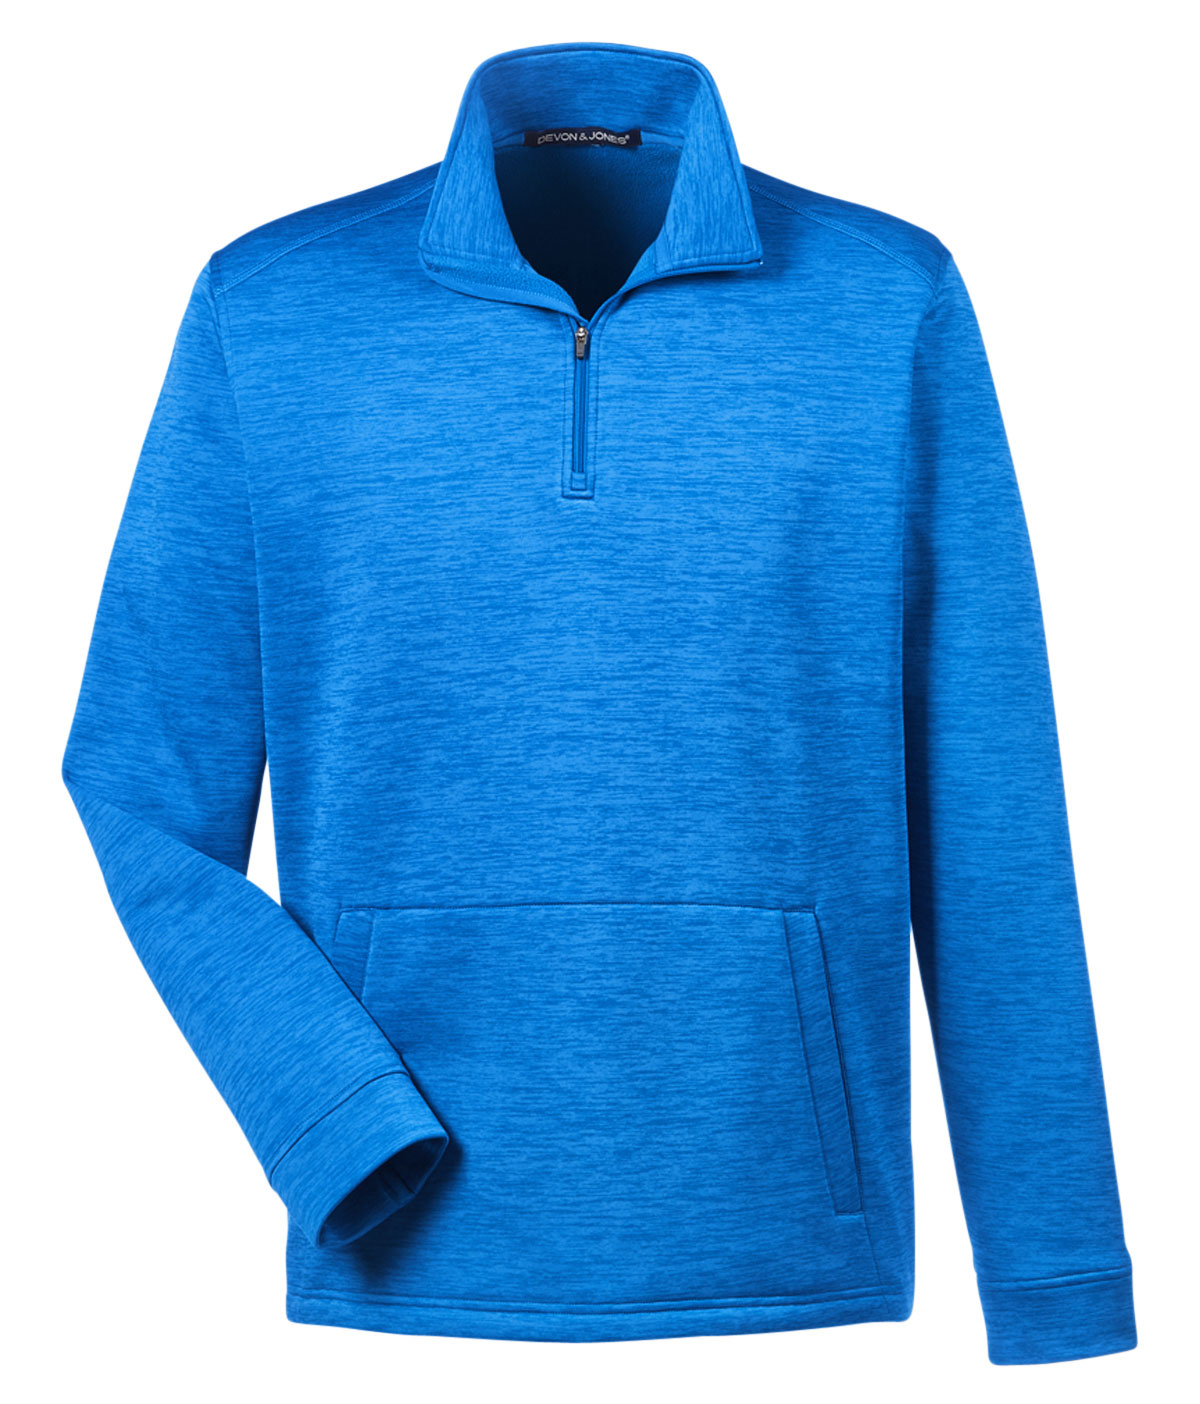 Mens Newbury Melange Fleece Quarter-Zip